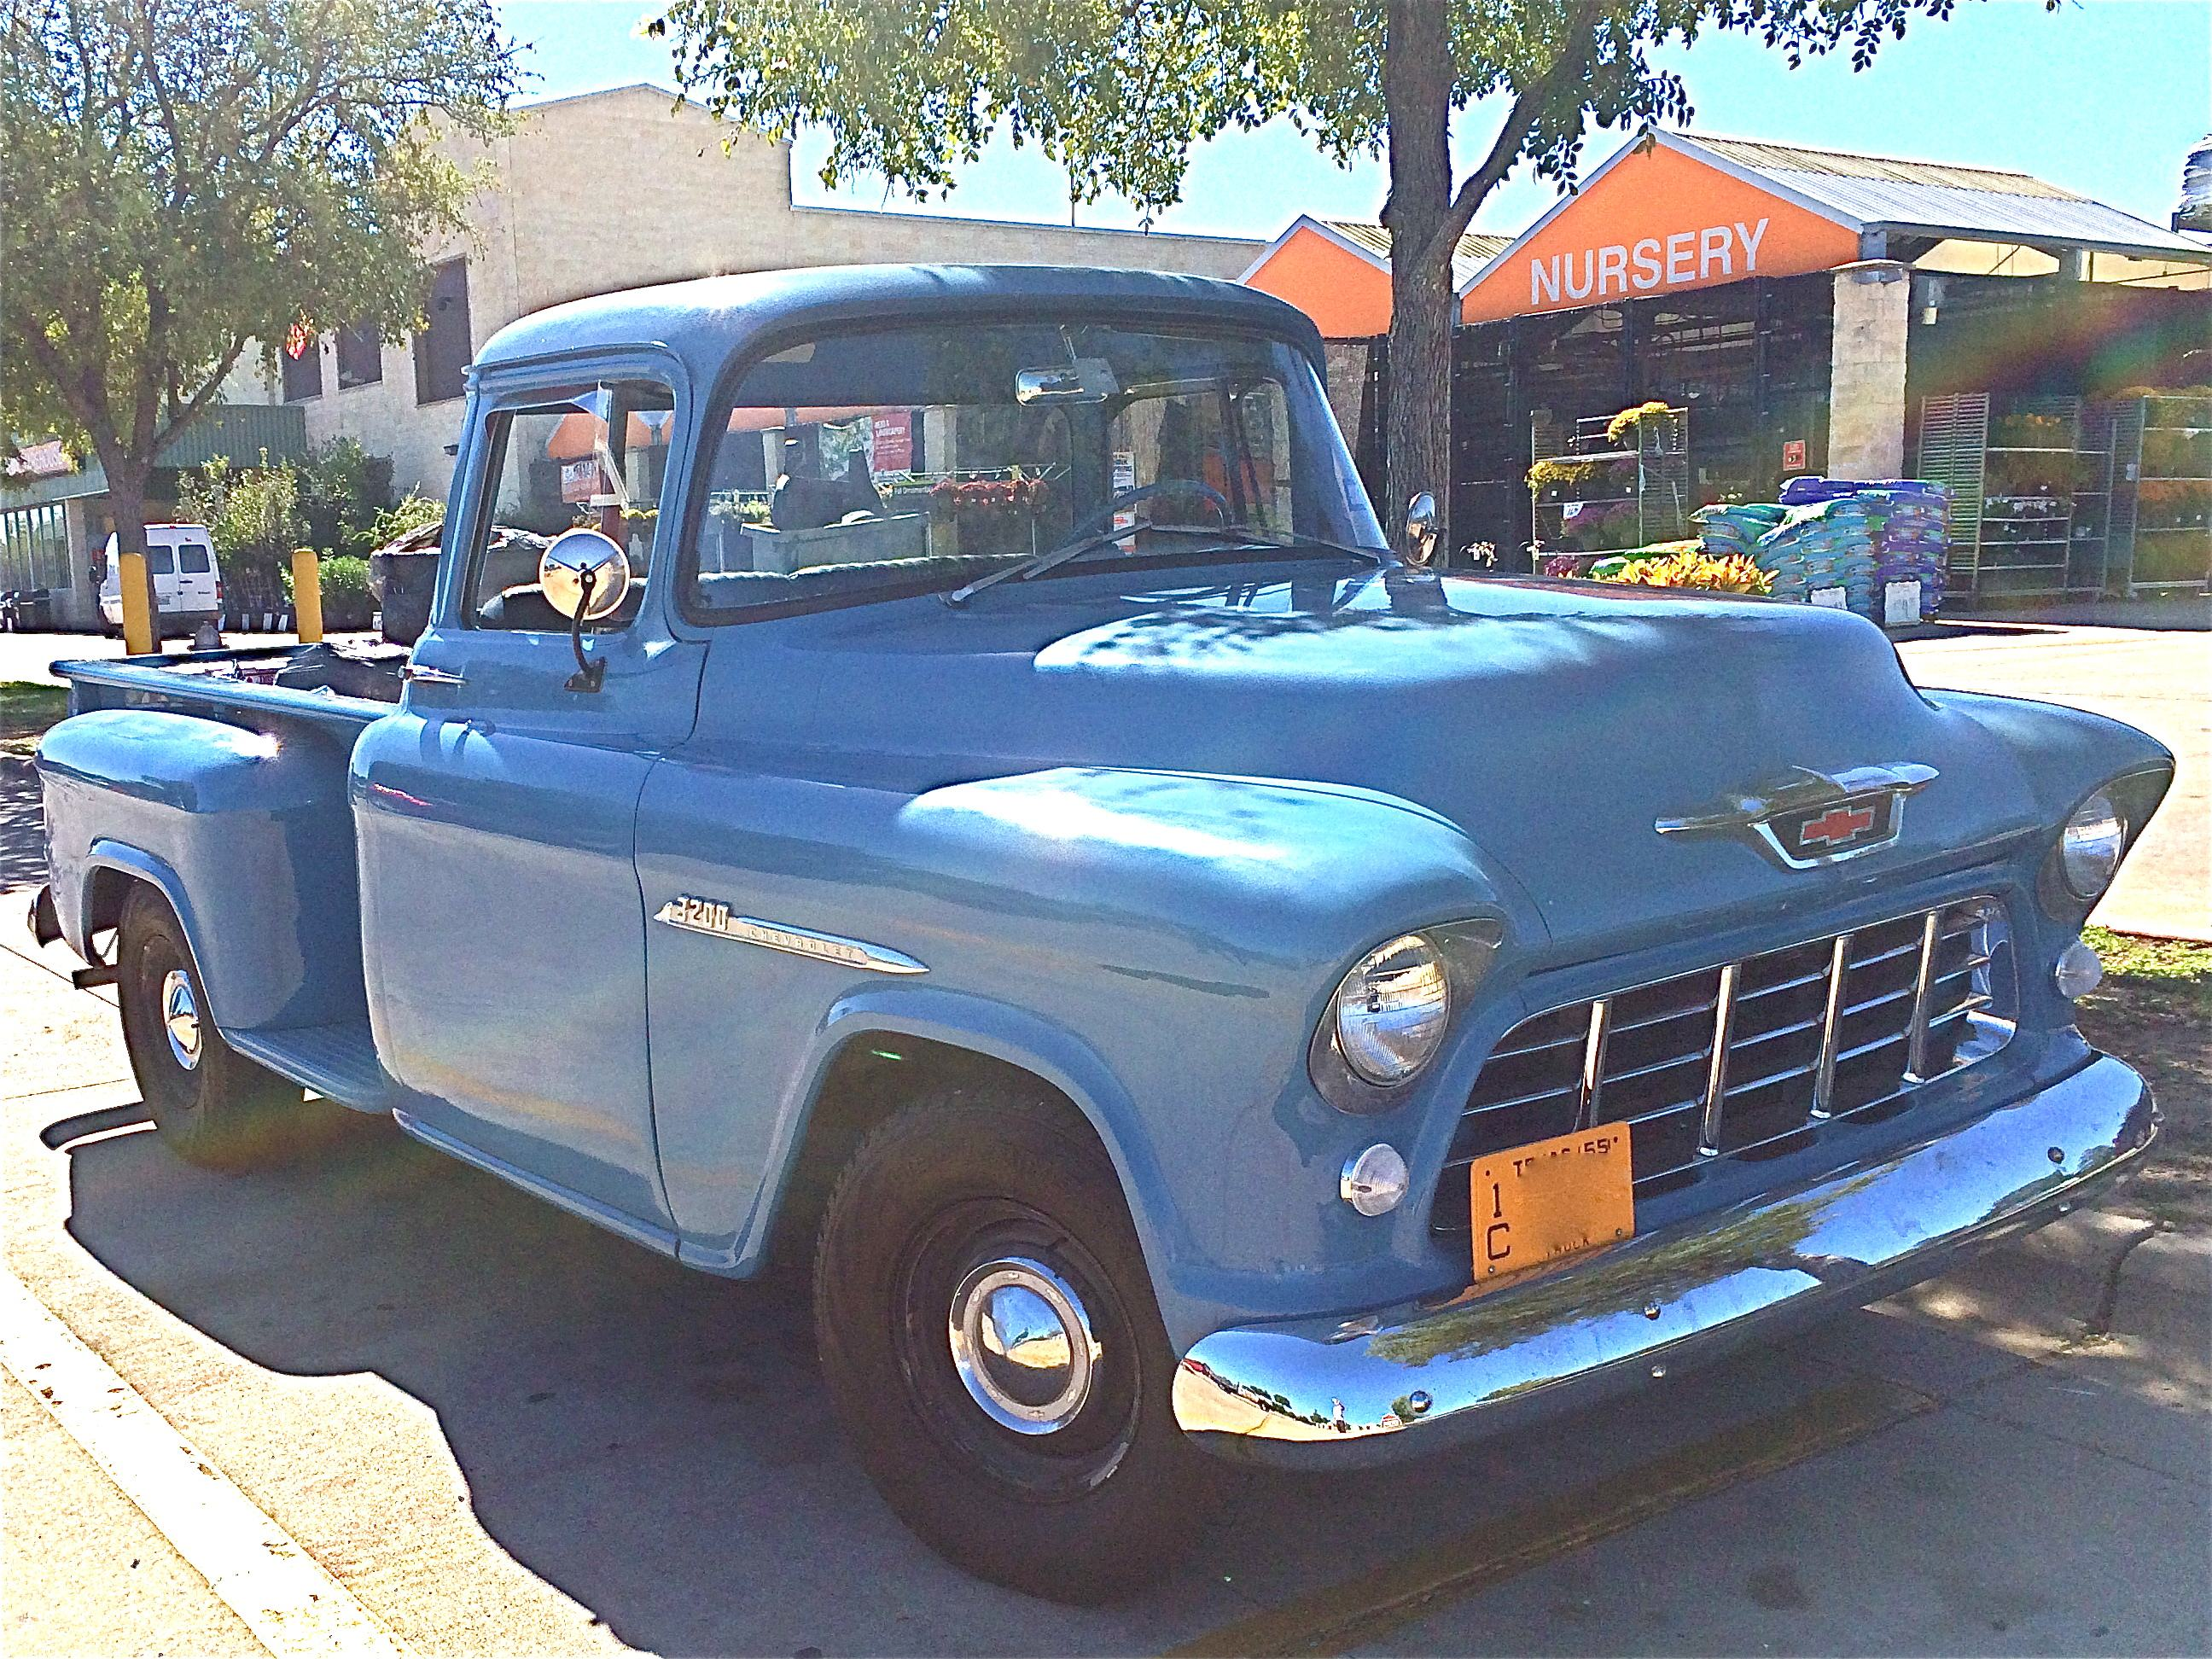 Handsome 1955 Chevrolet 3200 Pickup At Home Depot Atx